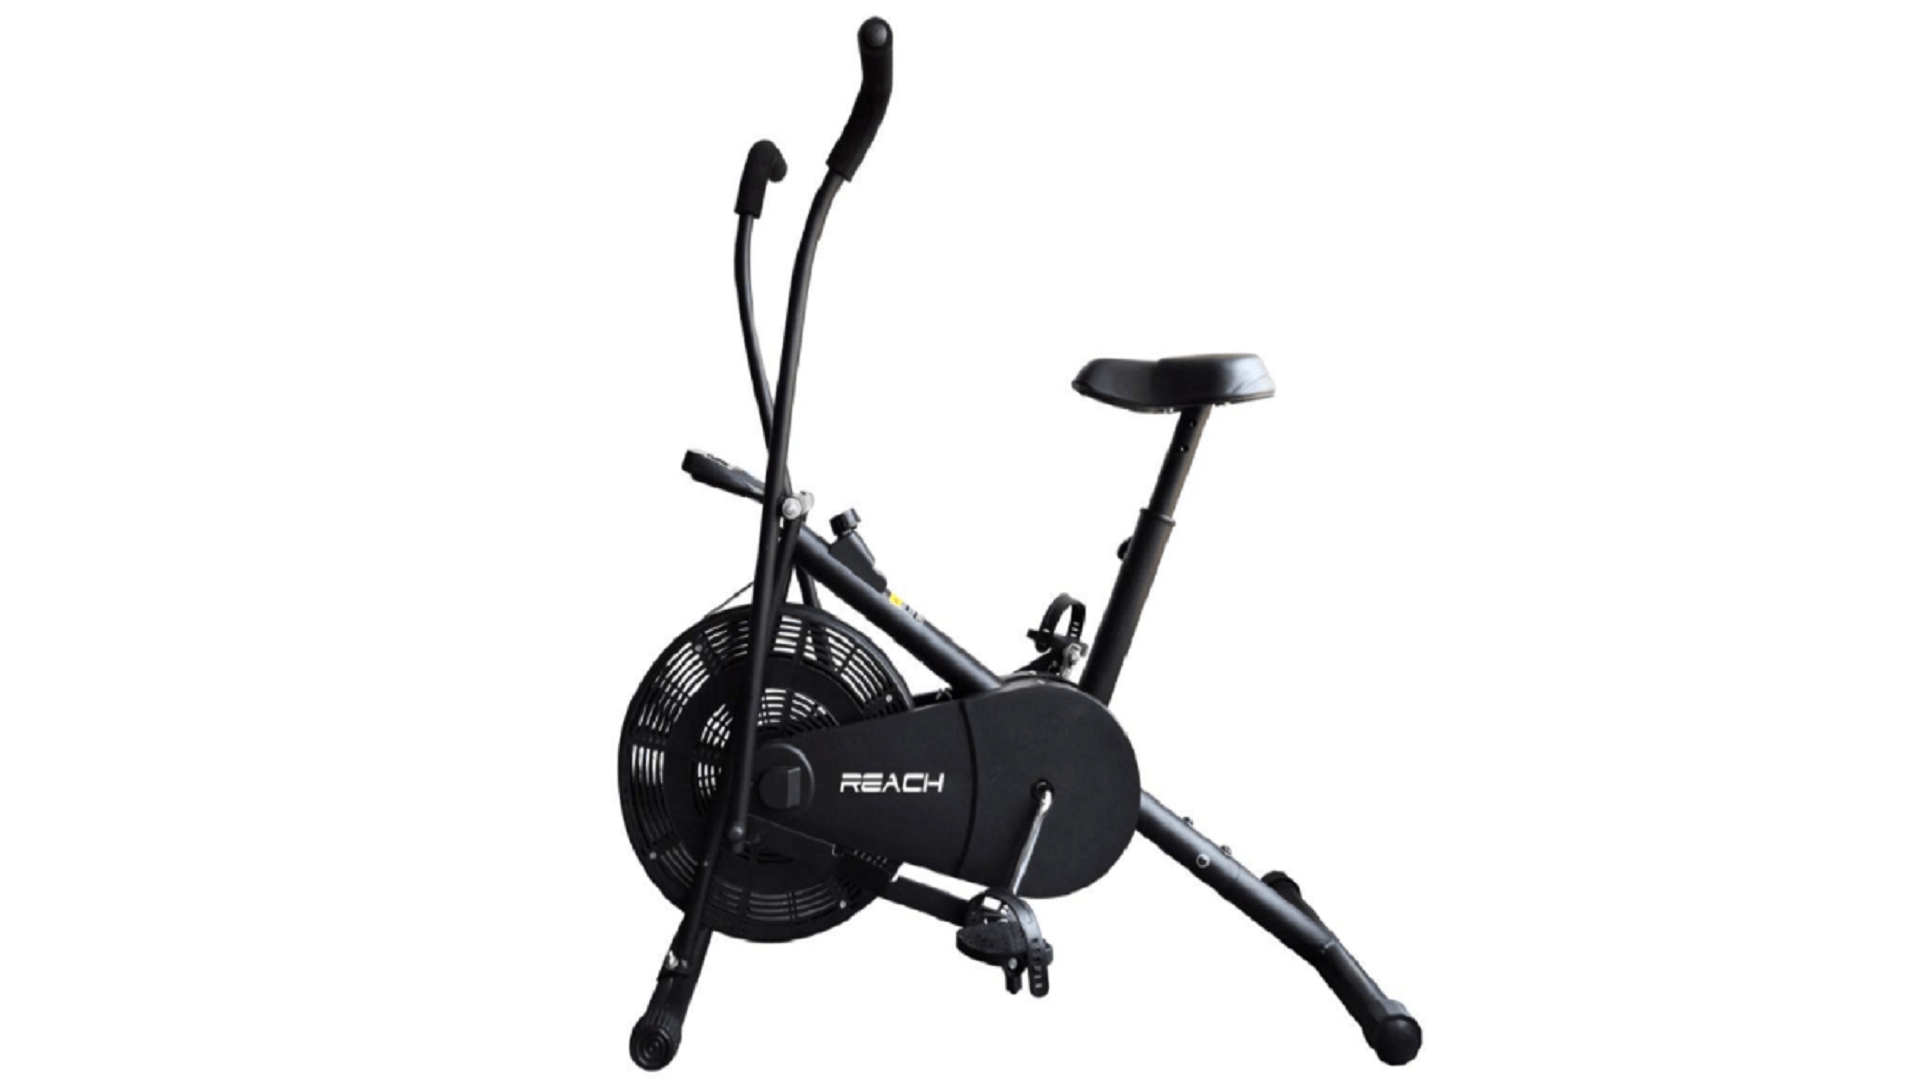 reach ab-110 air bike exercise fitness cycle